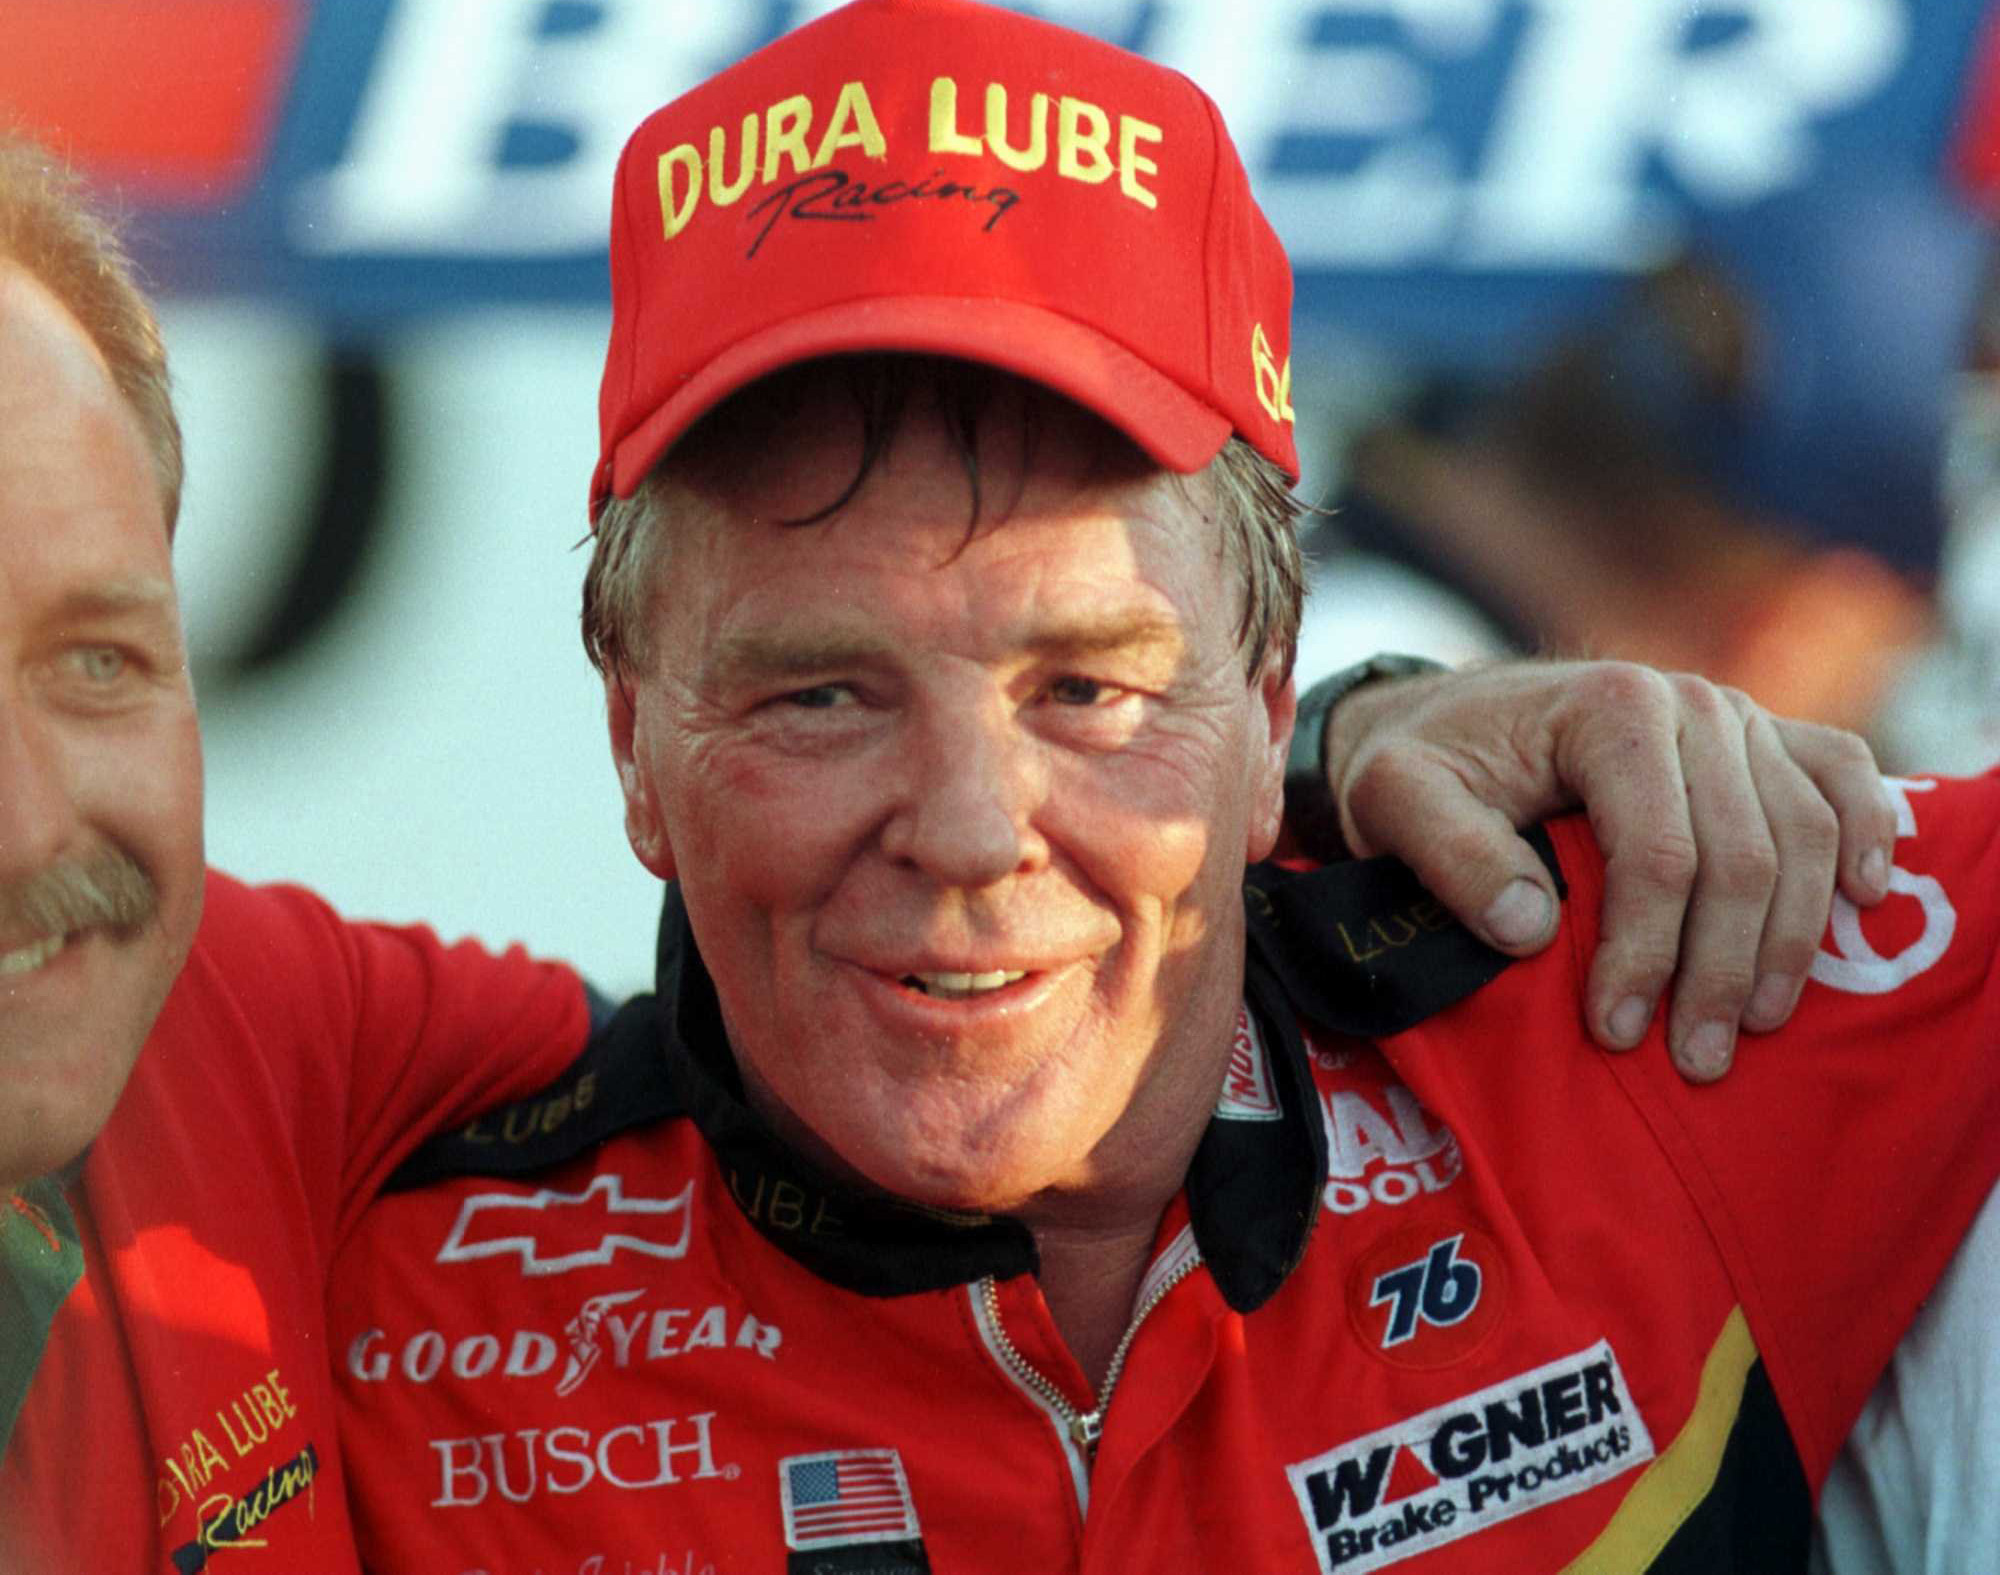 NASCAR's Dick Trickle Tragically Took His Own Life After Years of Pain